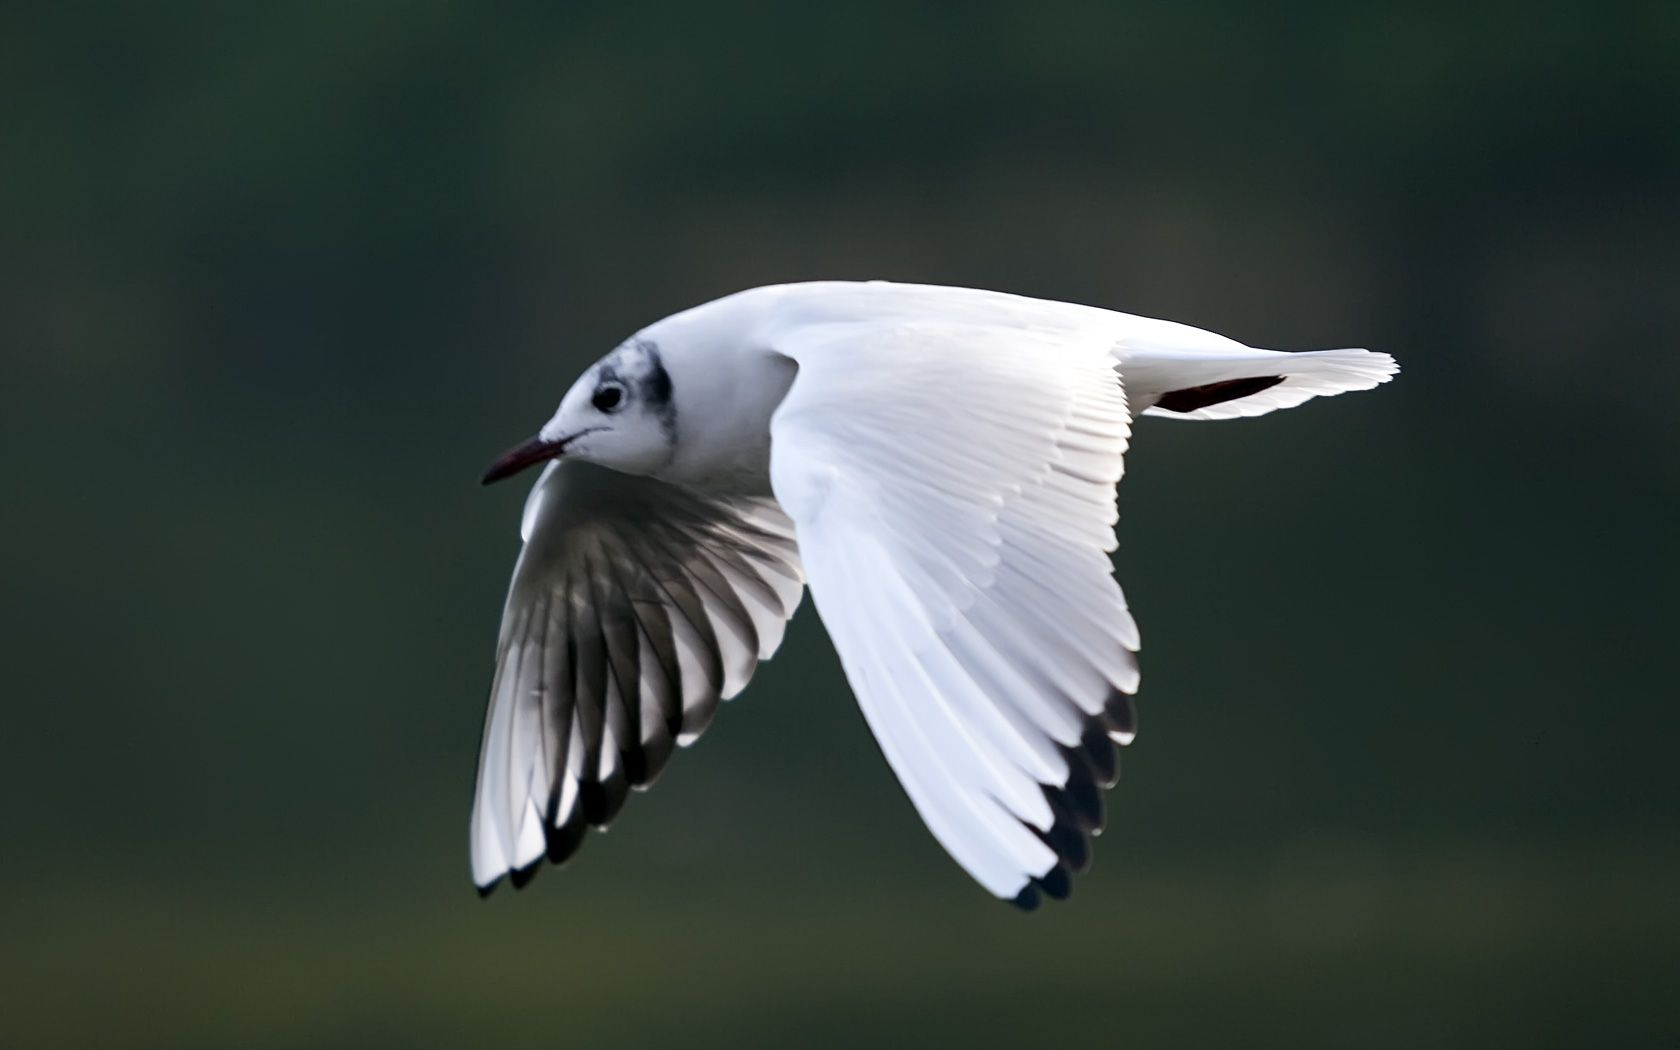 Seagull Flying Close Up Wallpaper 1680x1050